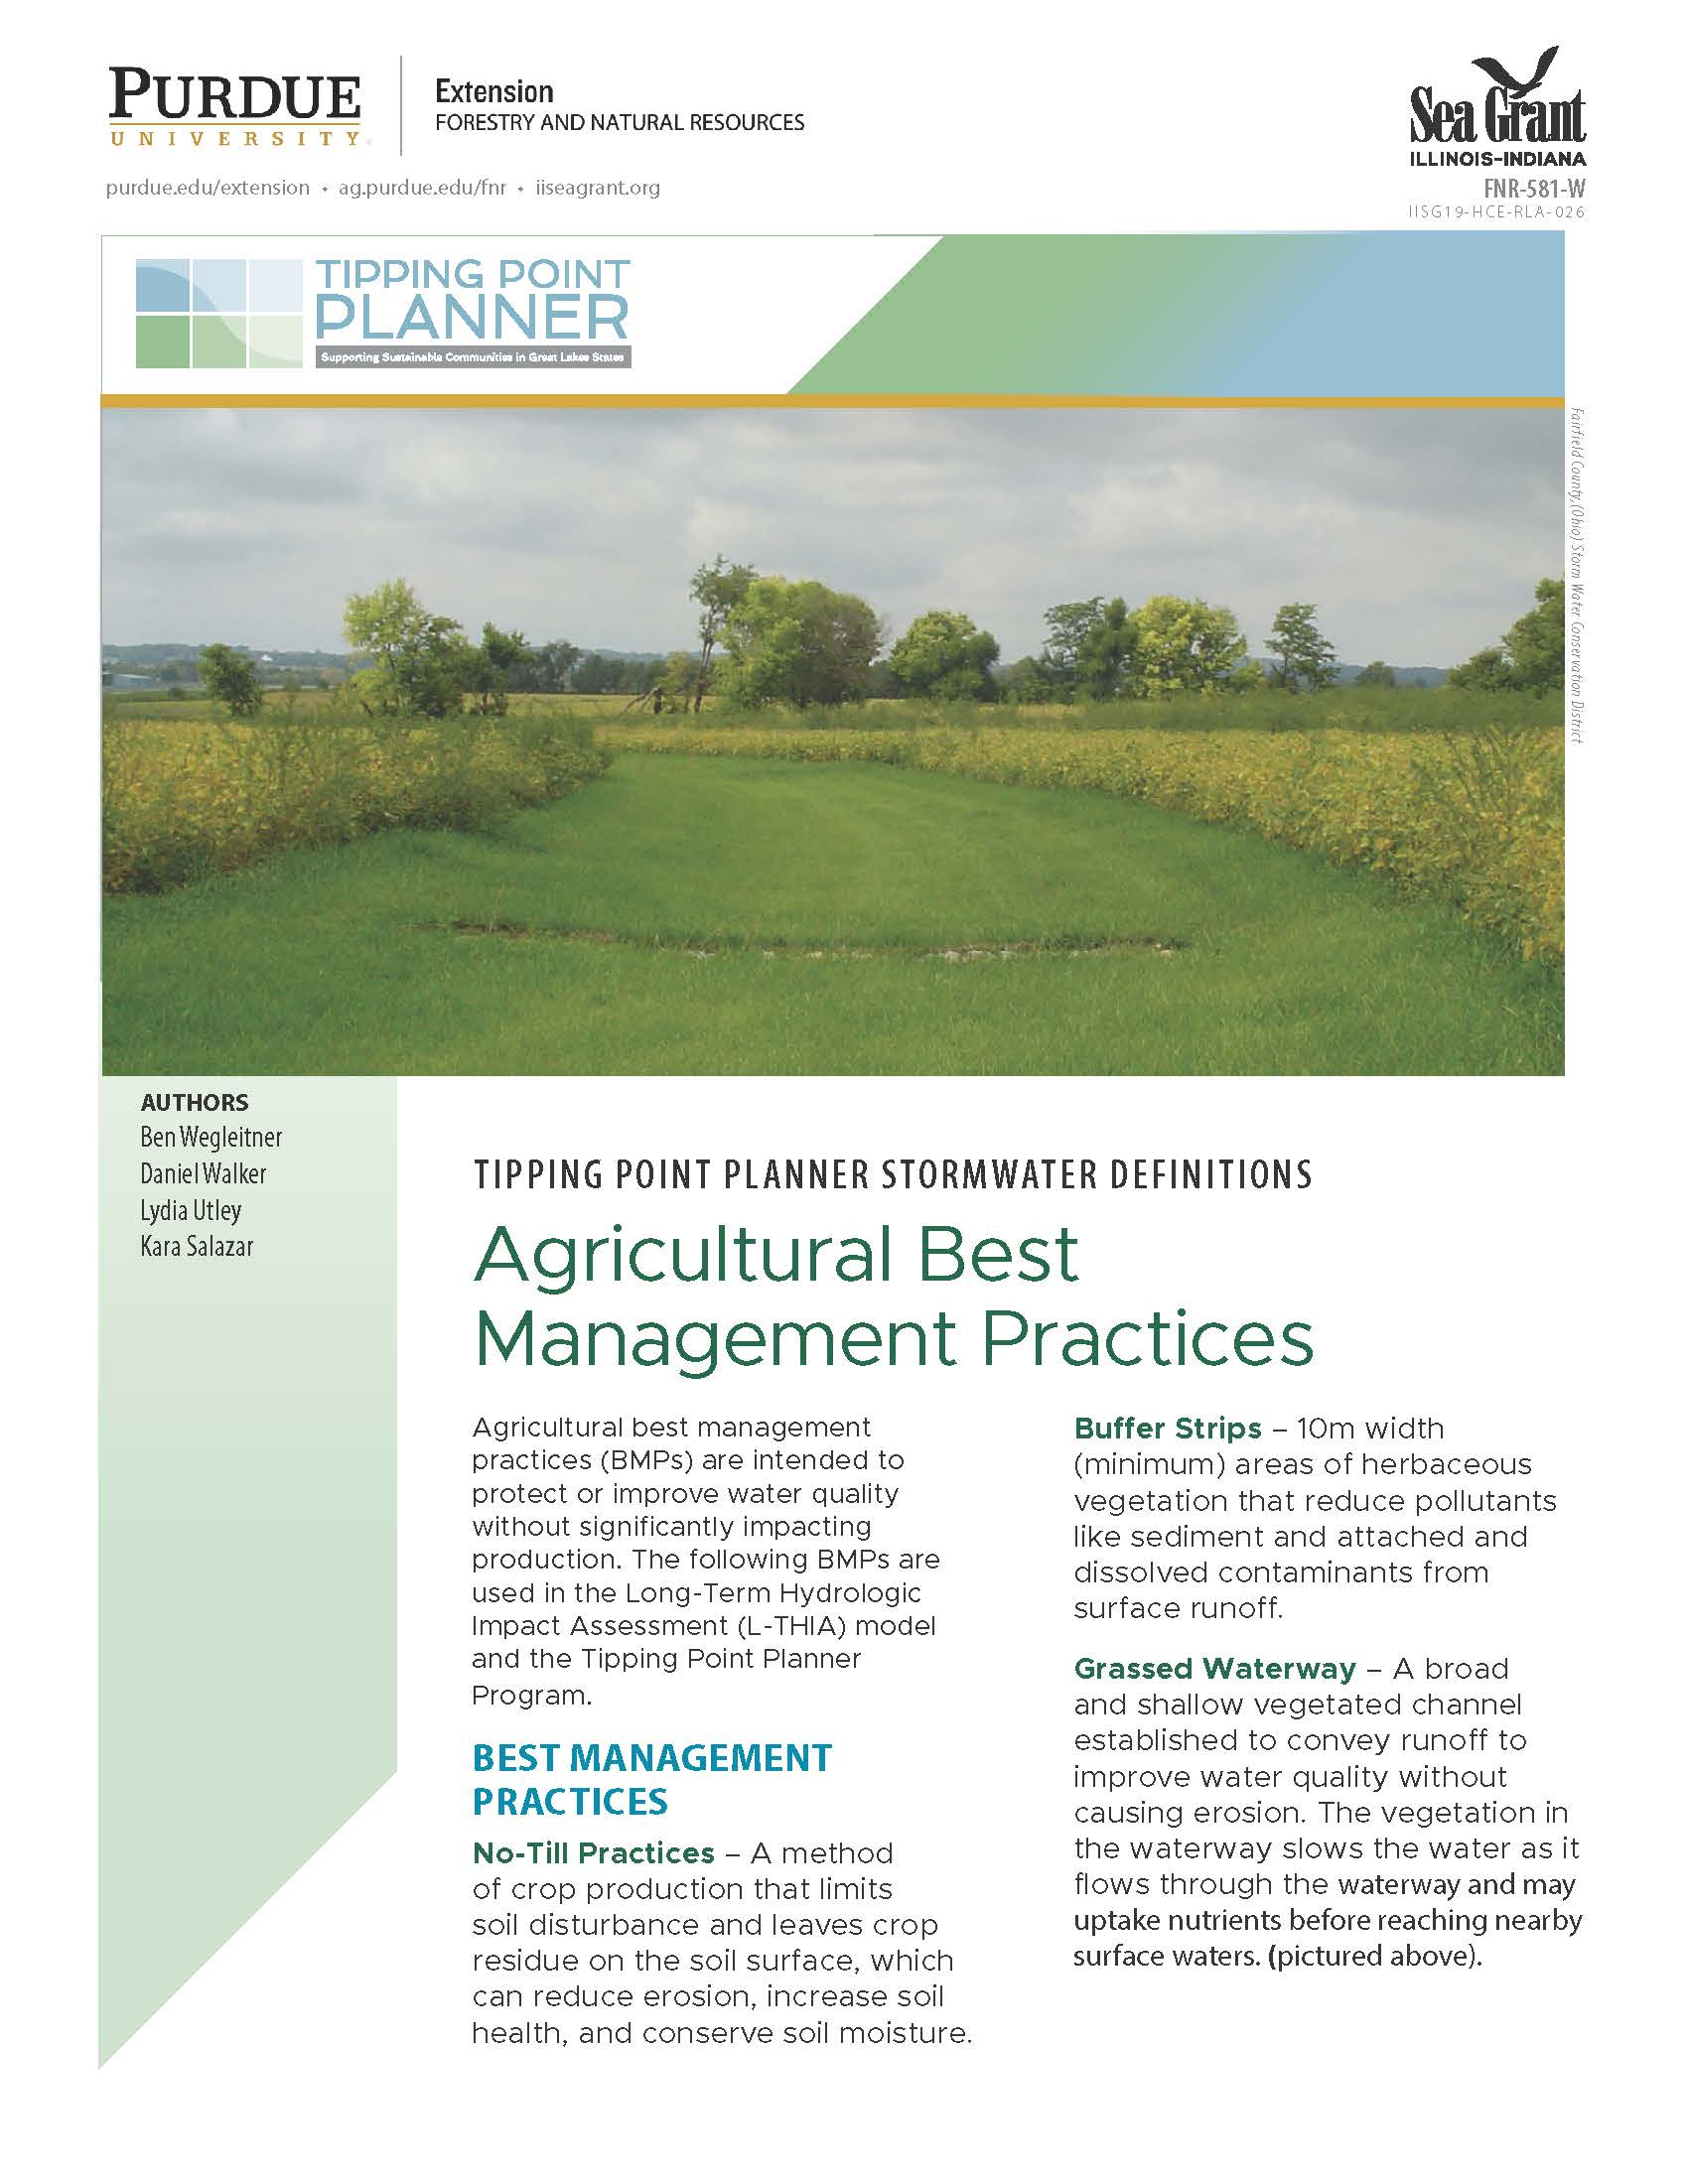 Agricultural Best Management Practices Thumbnail